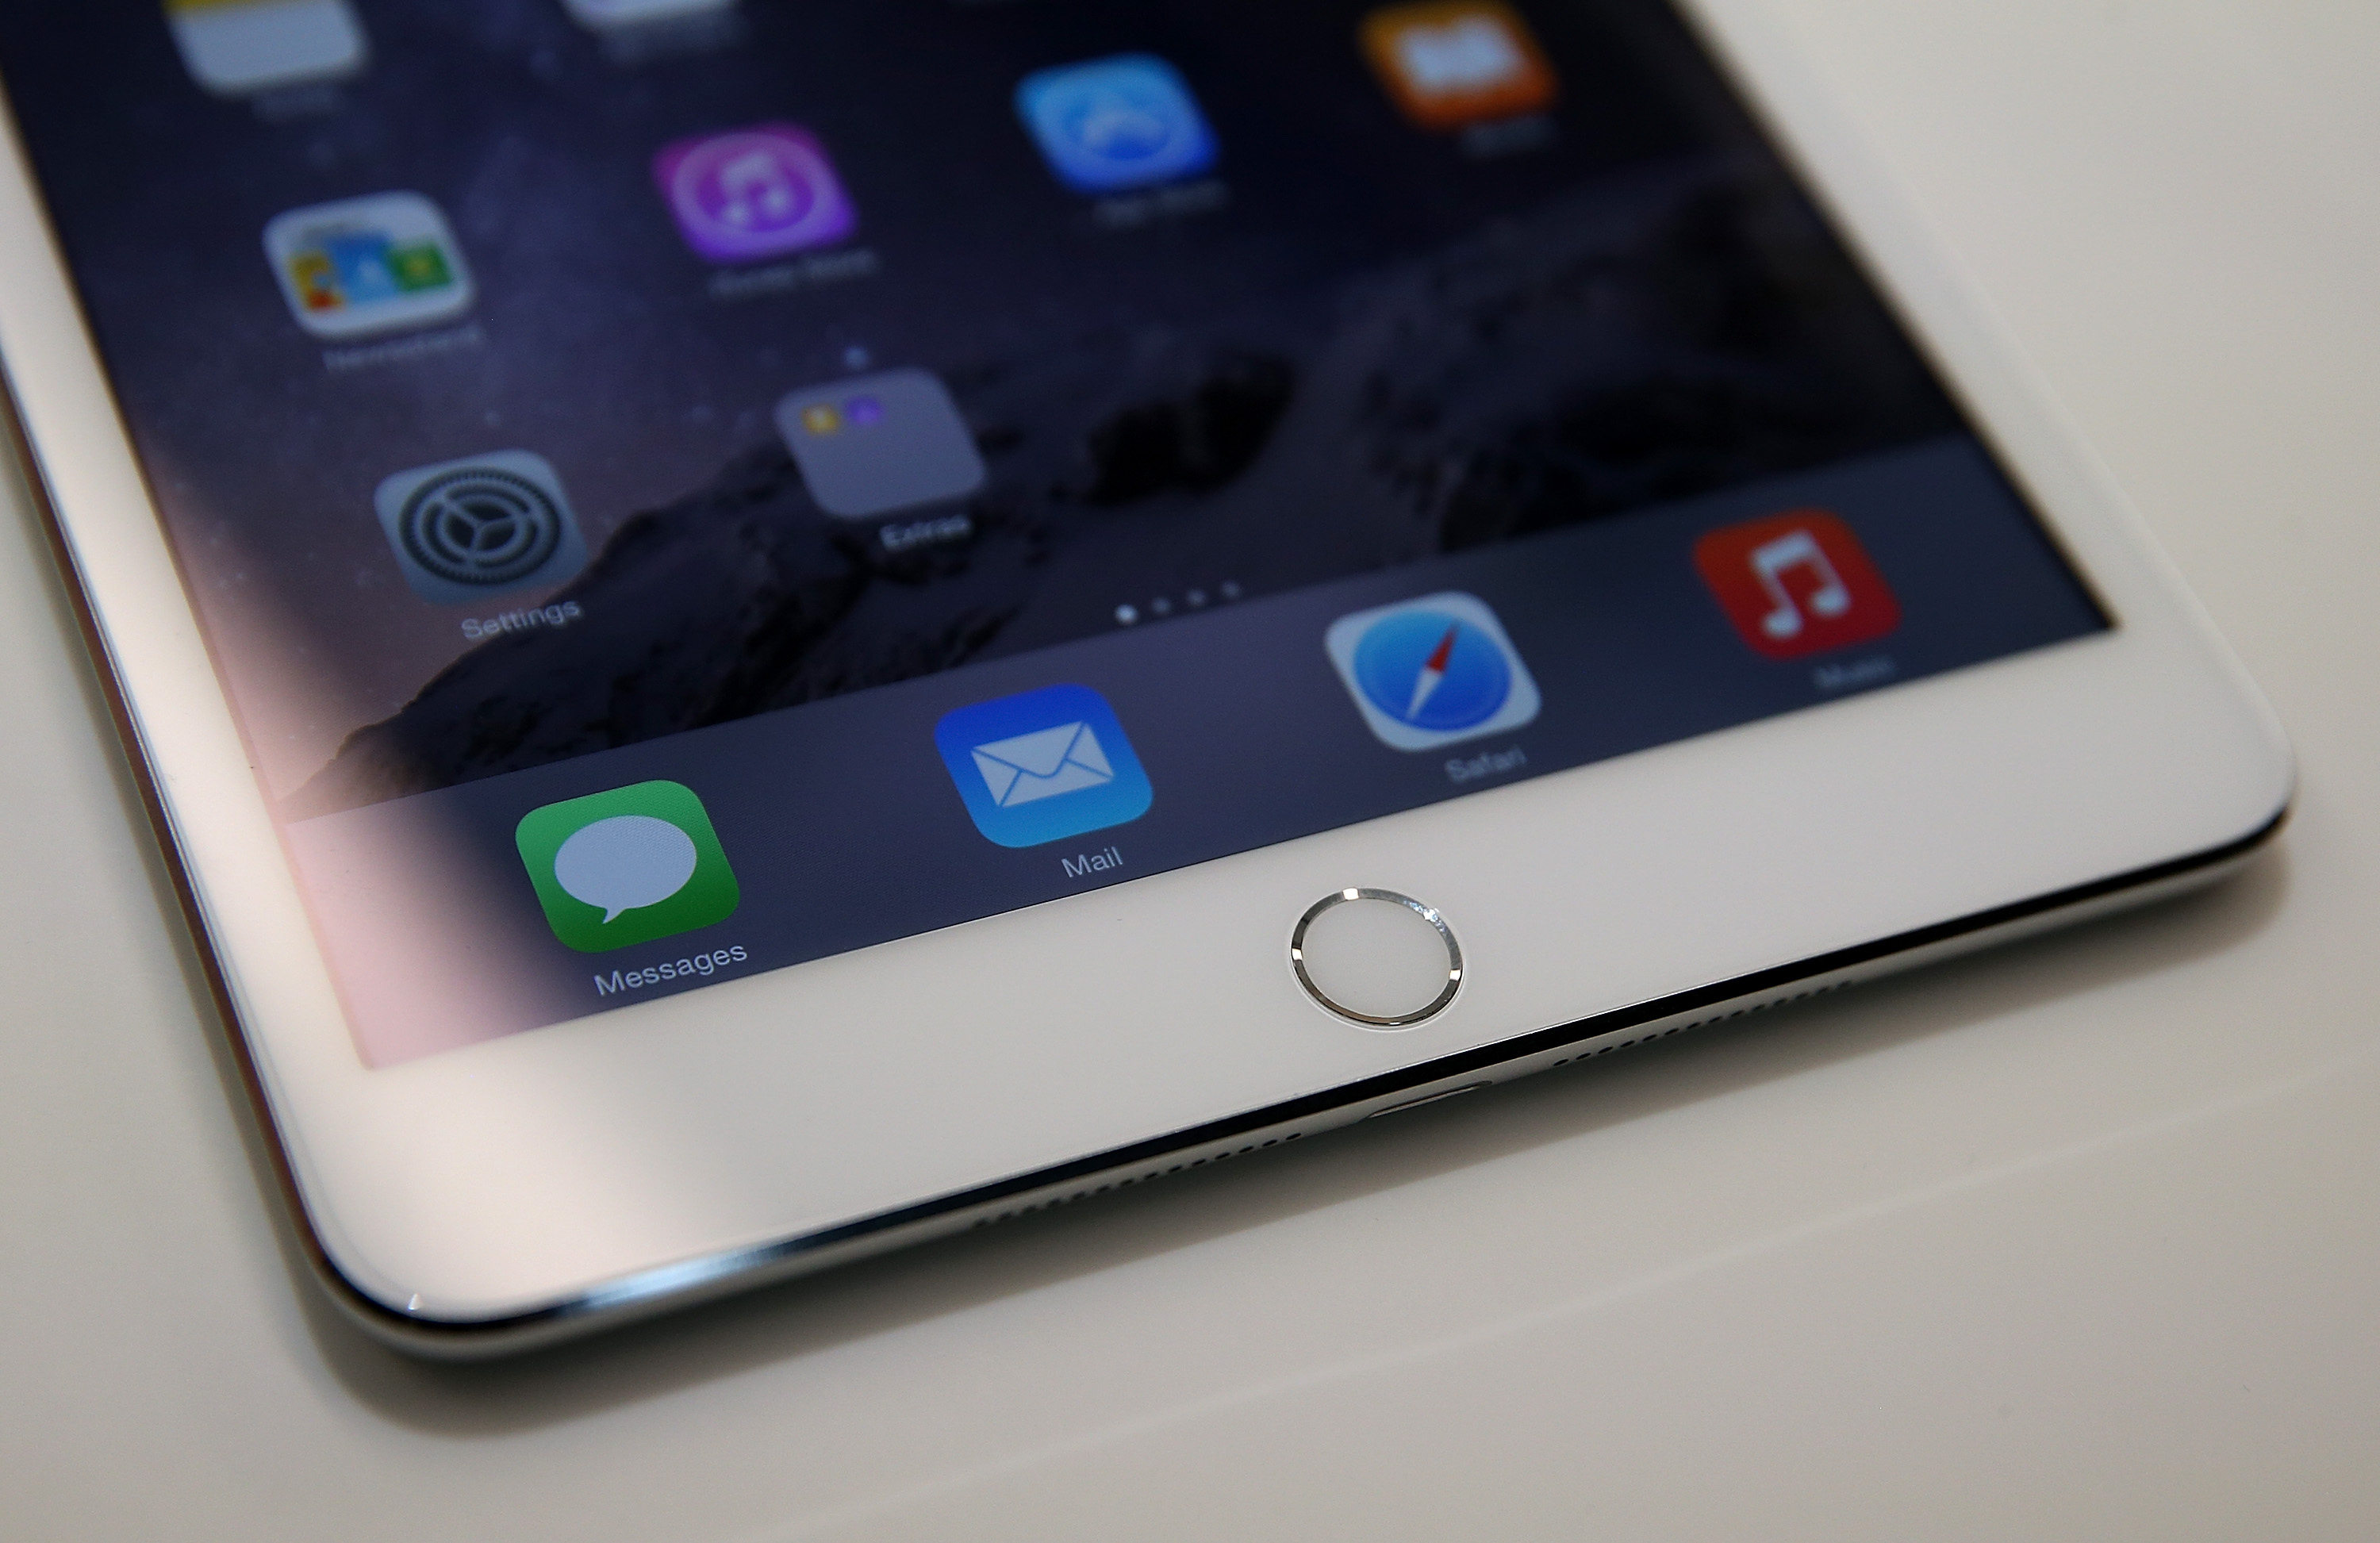 Fenced in: That unlocked Apple iPad SIM gets locked when activated on AT&T